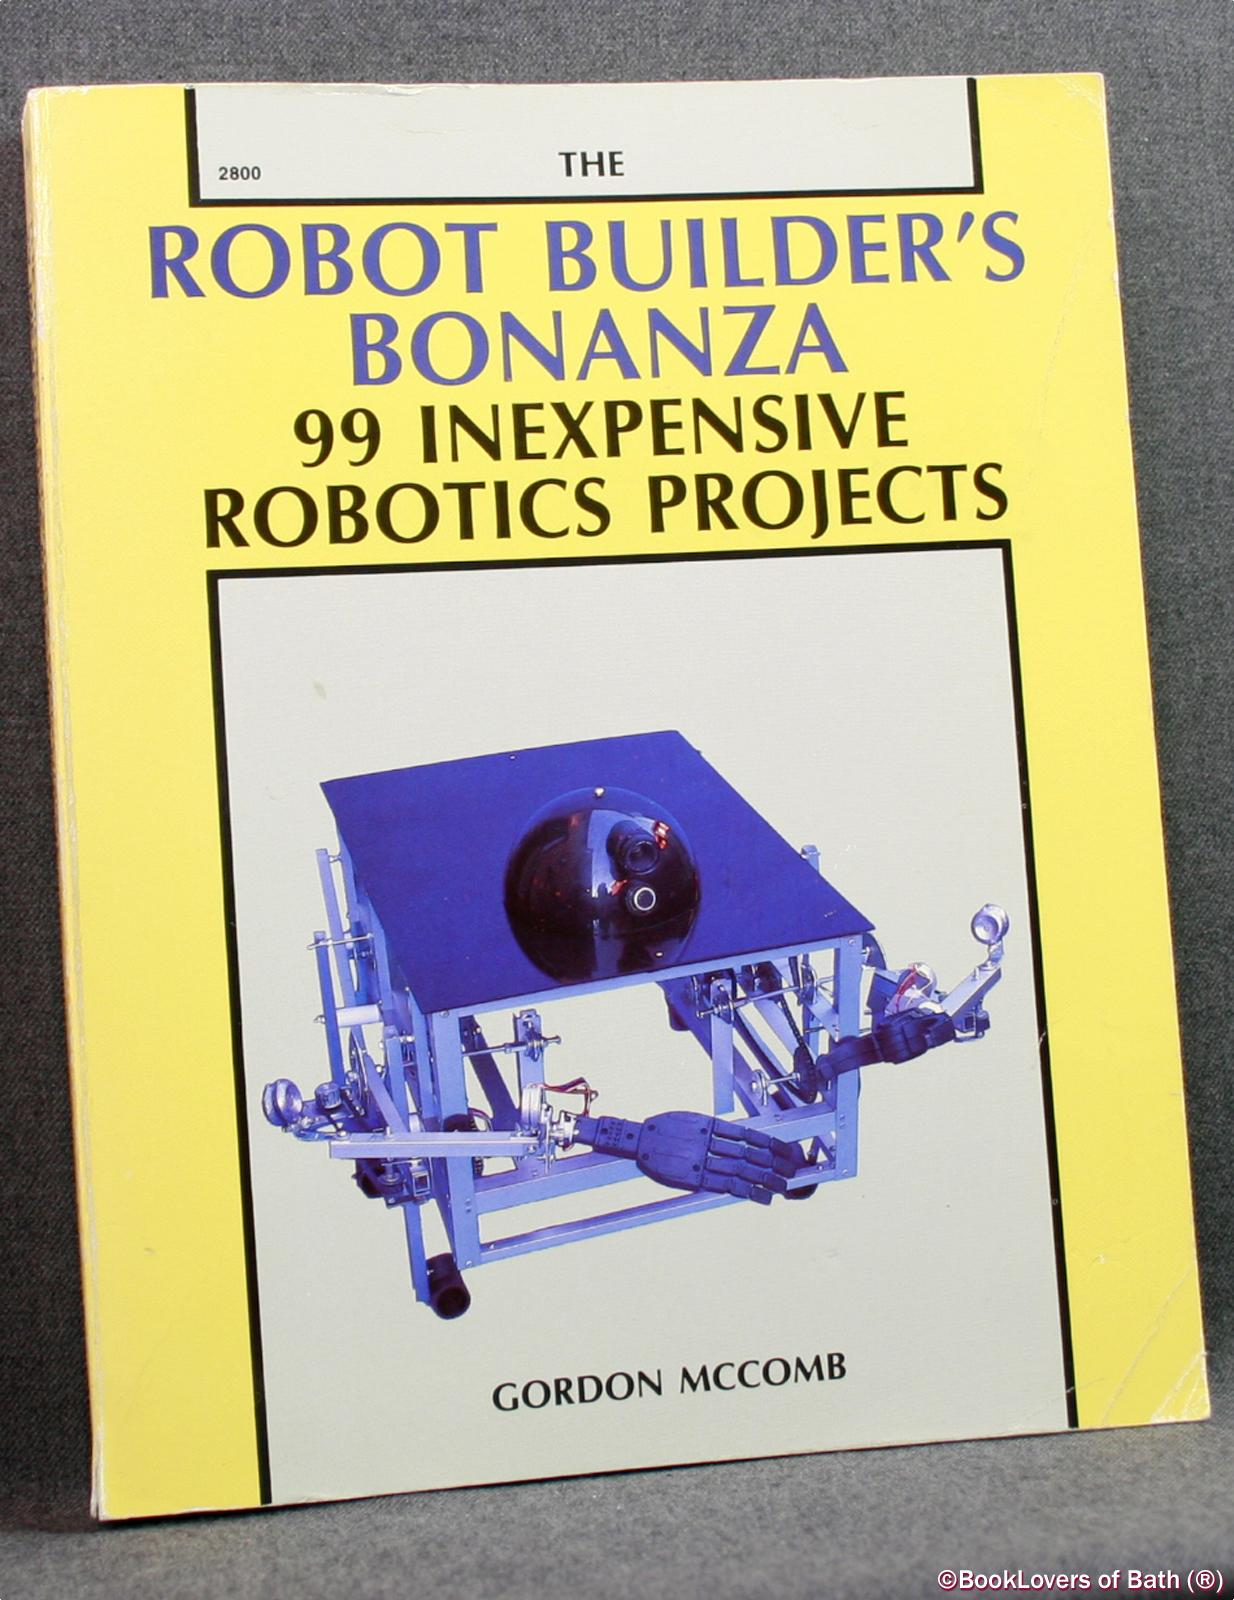 The Robot Builder's Bonanza: 99 Inexpensive Robotics Projects - Gordon McComb